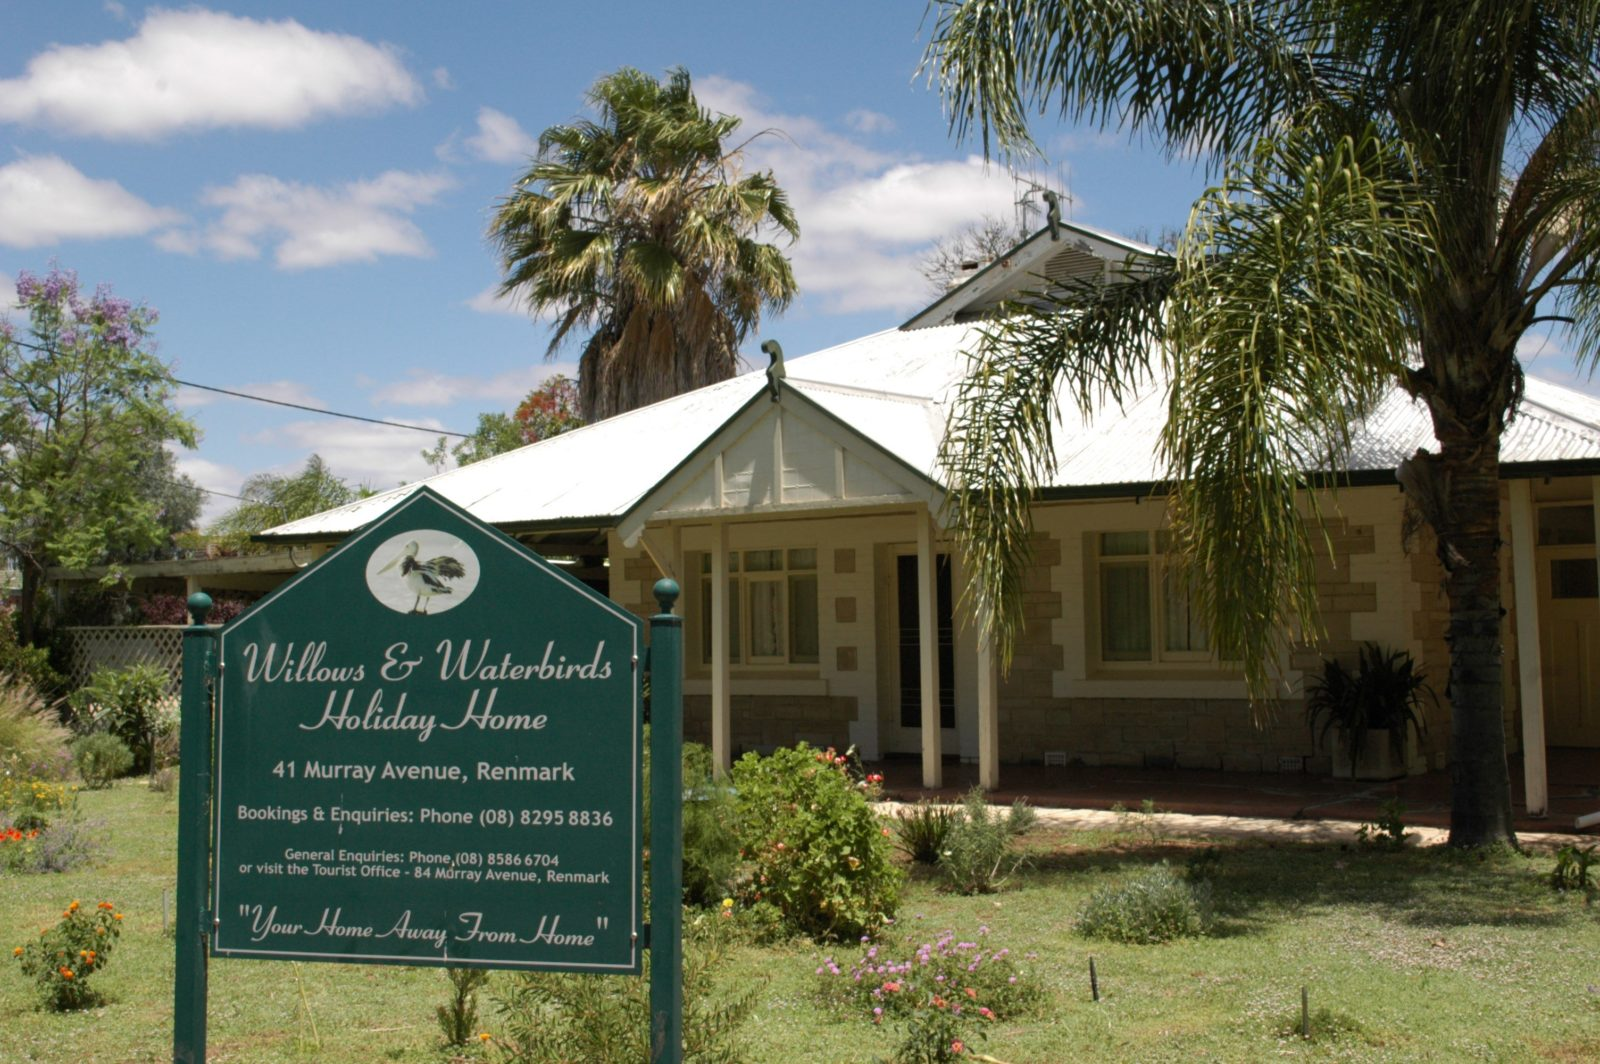 renmark holiday home front